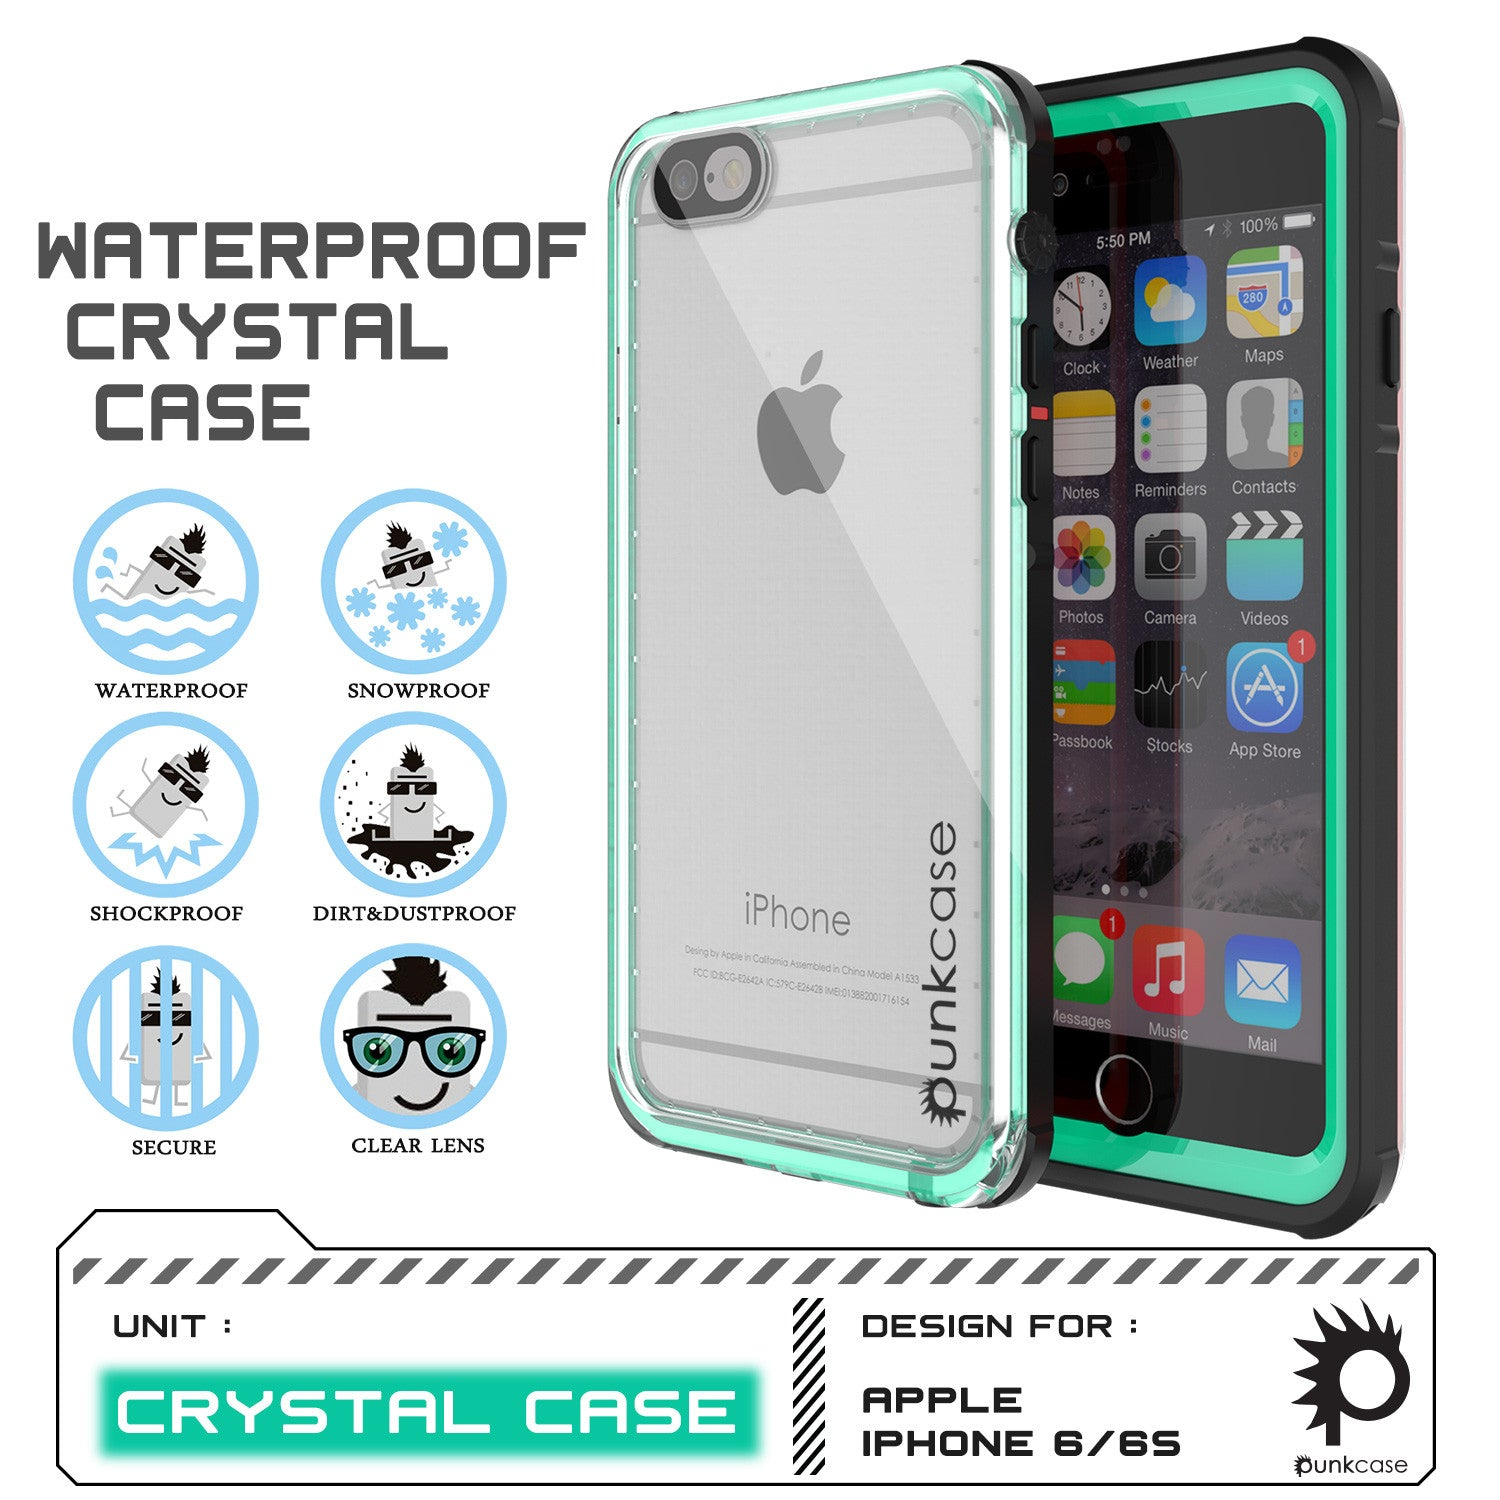 iPhone 6/6S Waterproof Case, PUNKcase CRYSTAL Teal W/ Attached Screen Protector  | Warranty